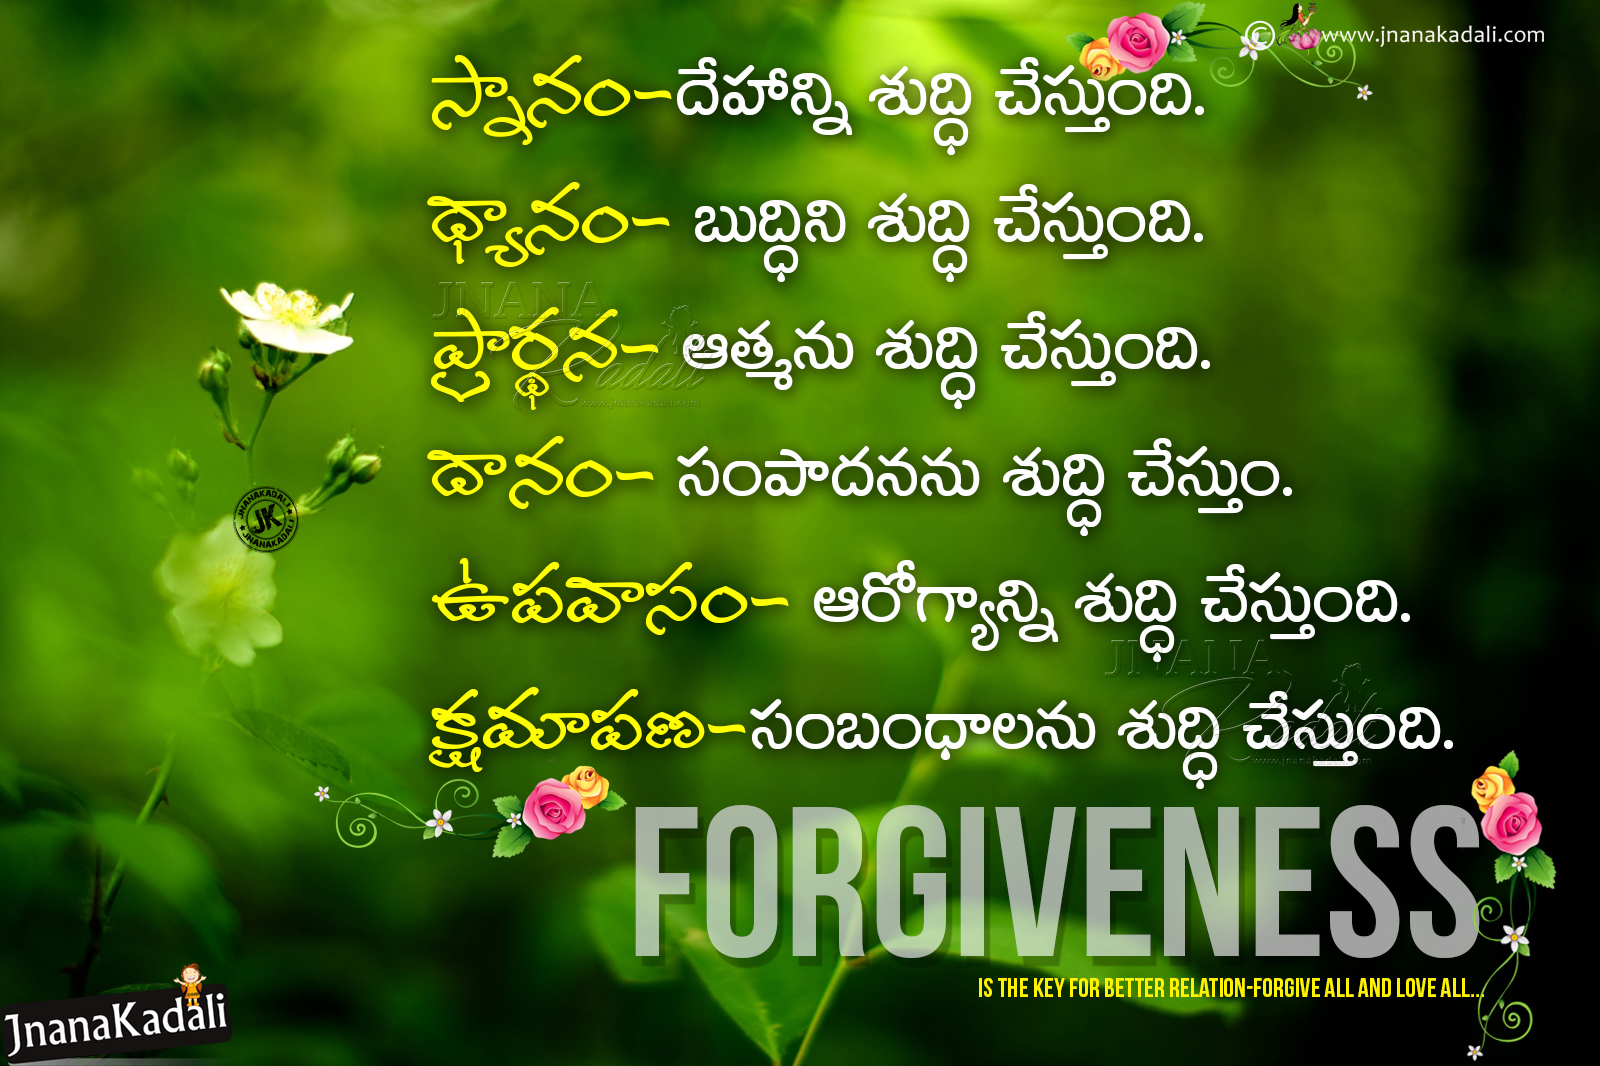 Good Quotes About Happiness Forgive Others For A Better Relation Quotes In Telugube Good And